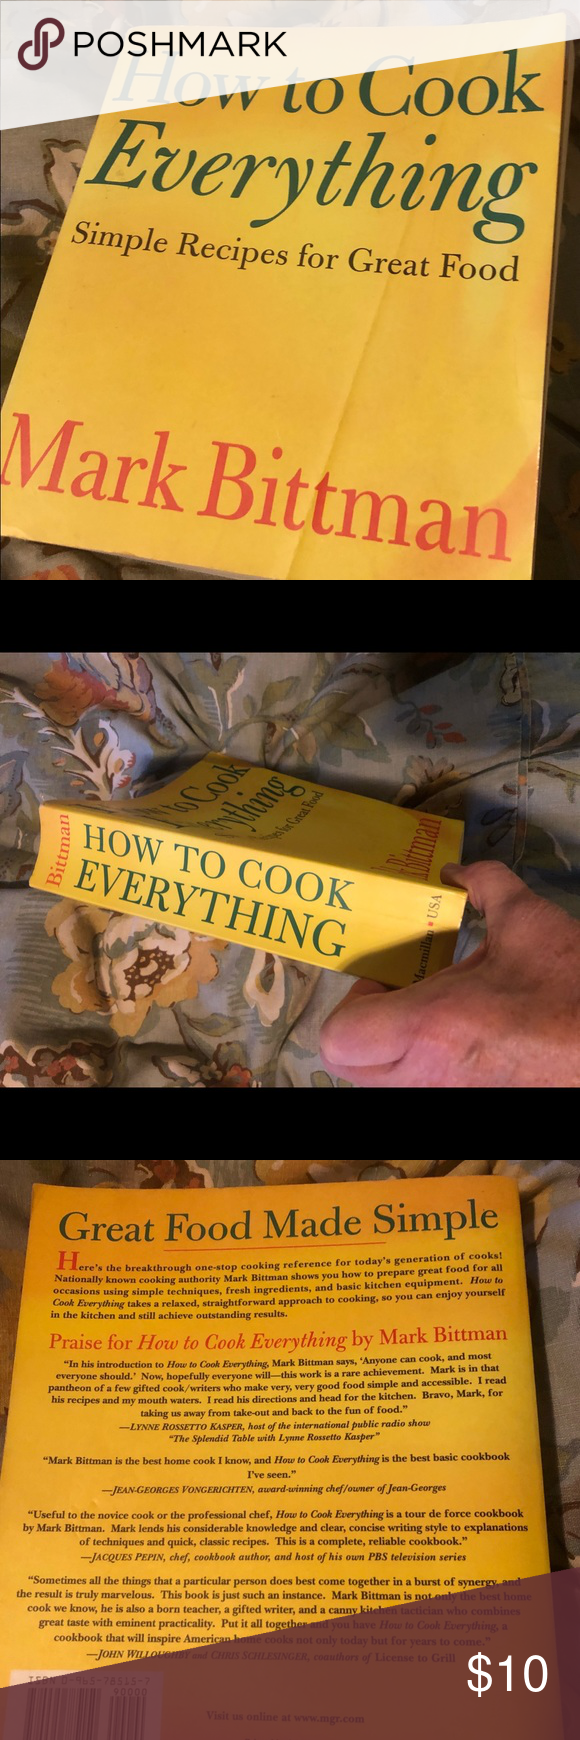 Cookbook Bittman HOW TO COOK EVERYTHING Simple recipes for great food by Mark Bittman   All offers considered use the offer button Other #markbittmanrecipes